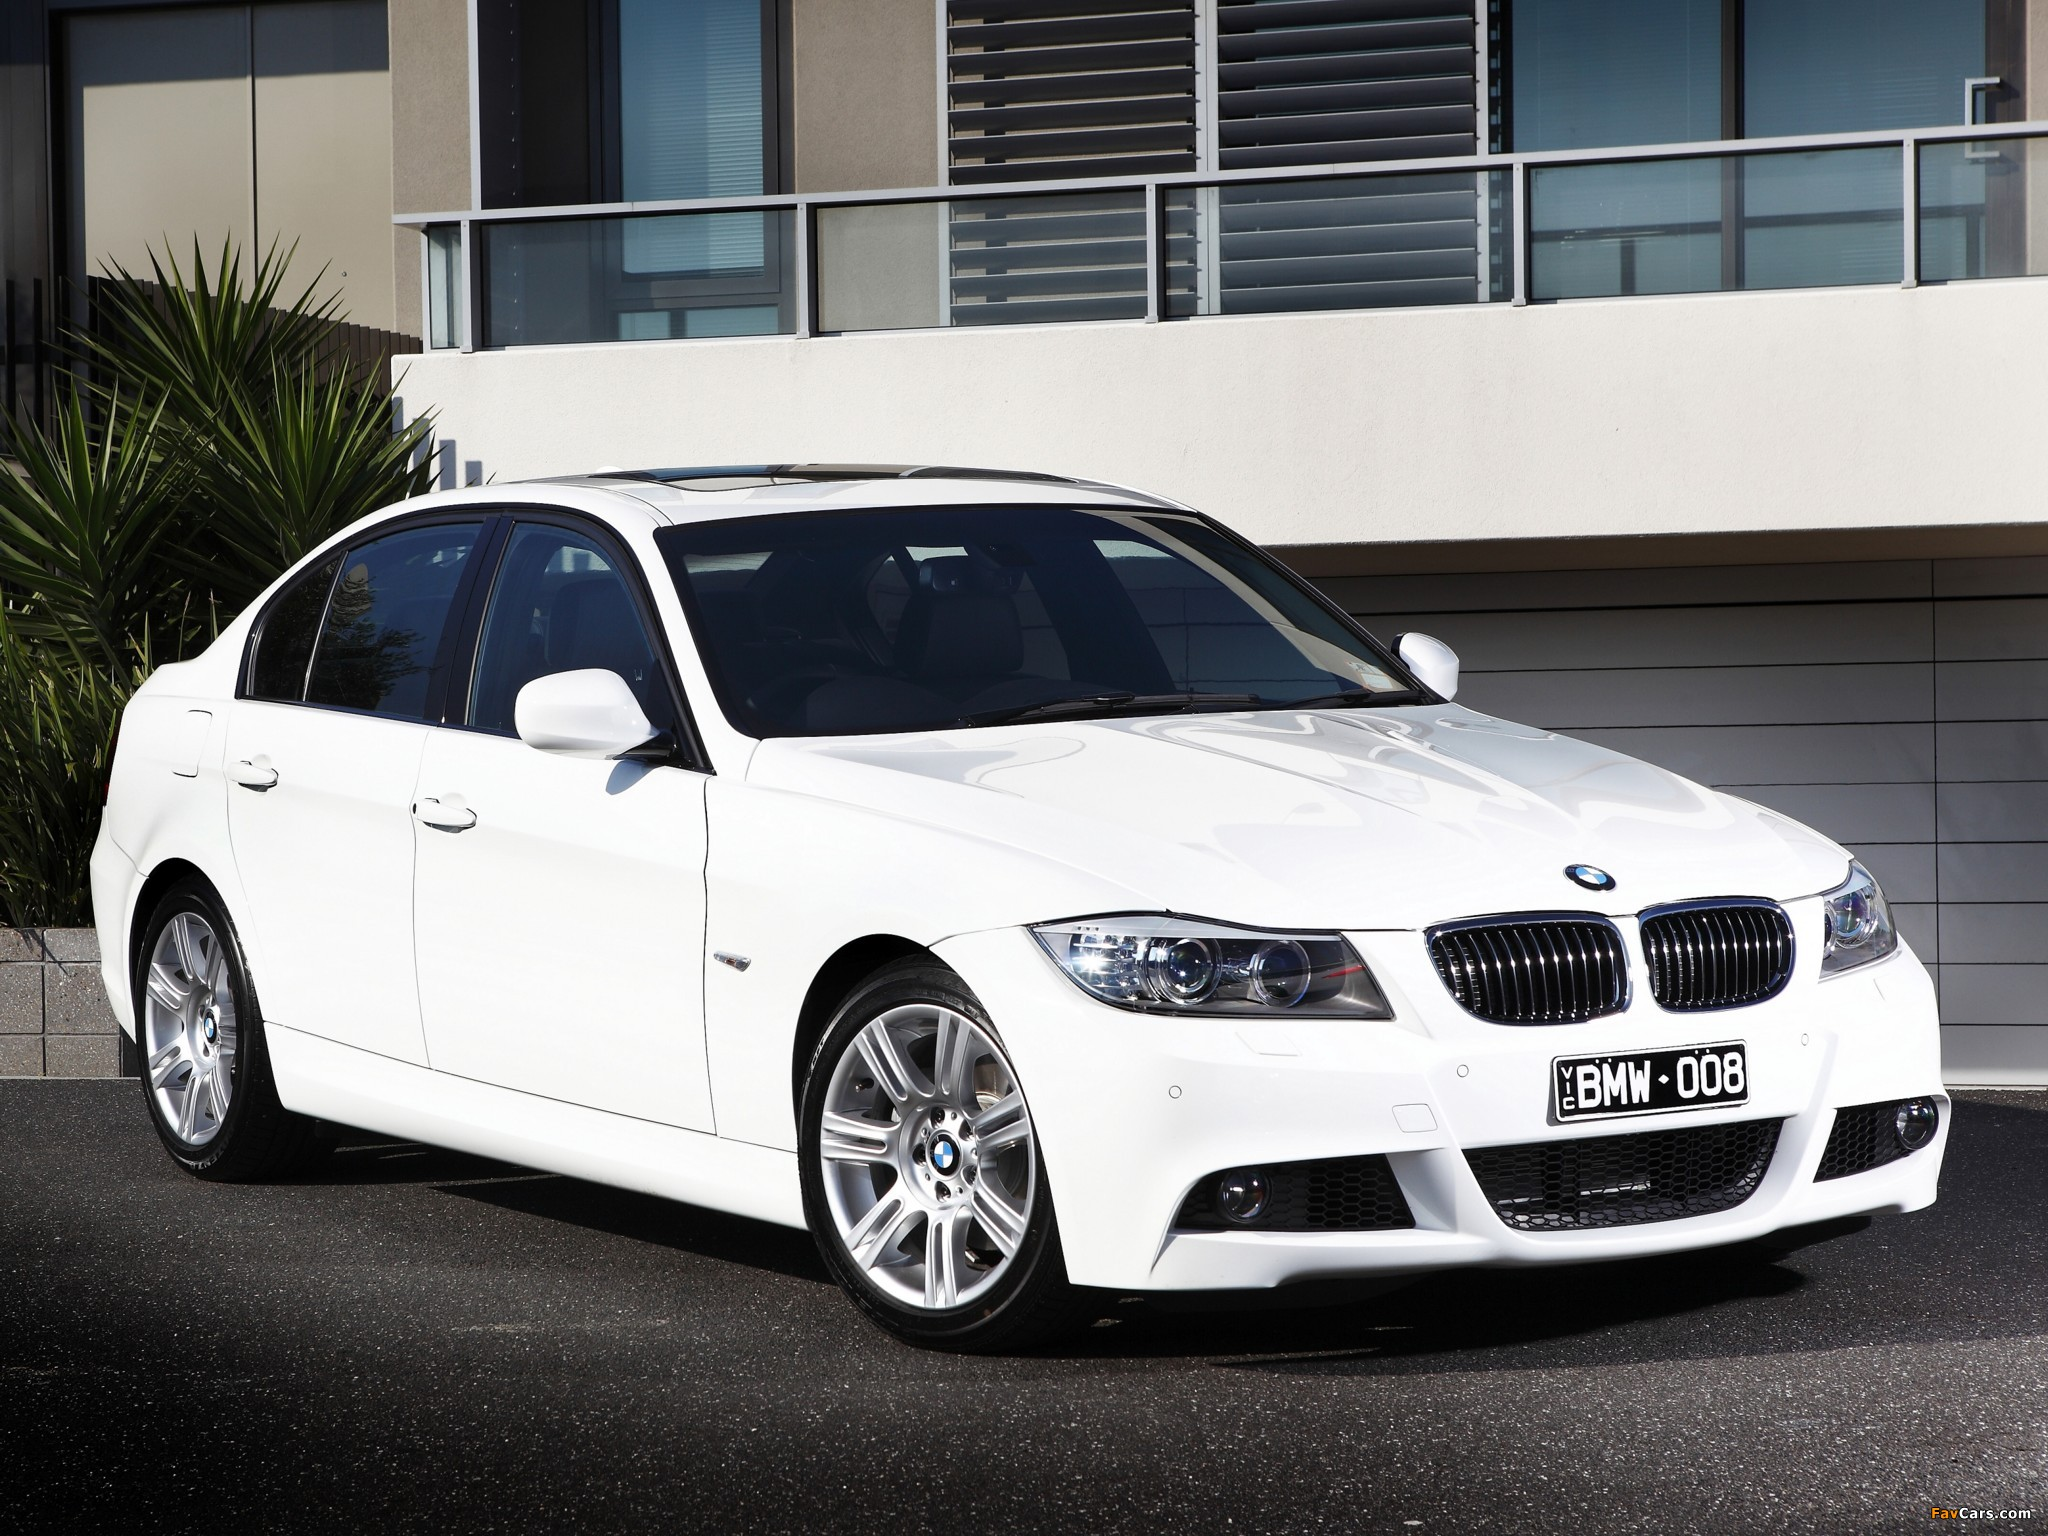 bmw 325i sedan m sports package au spec e90 2011 images. Black Bedroom Furniture Sets. Home Design Ideas